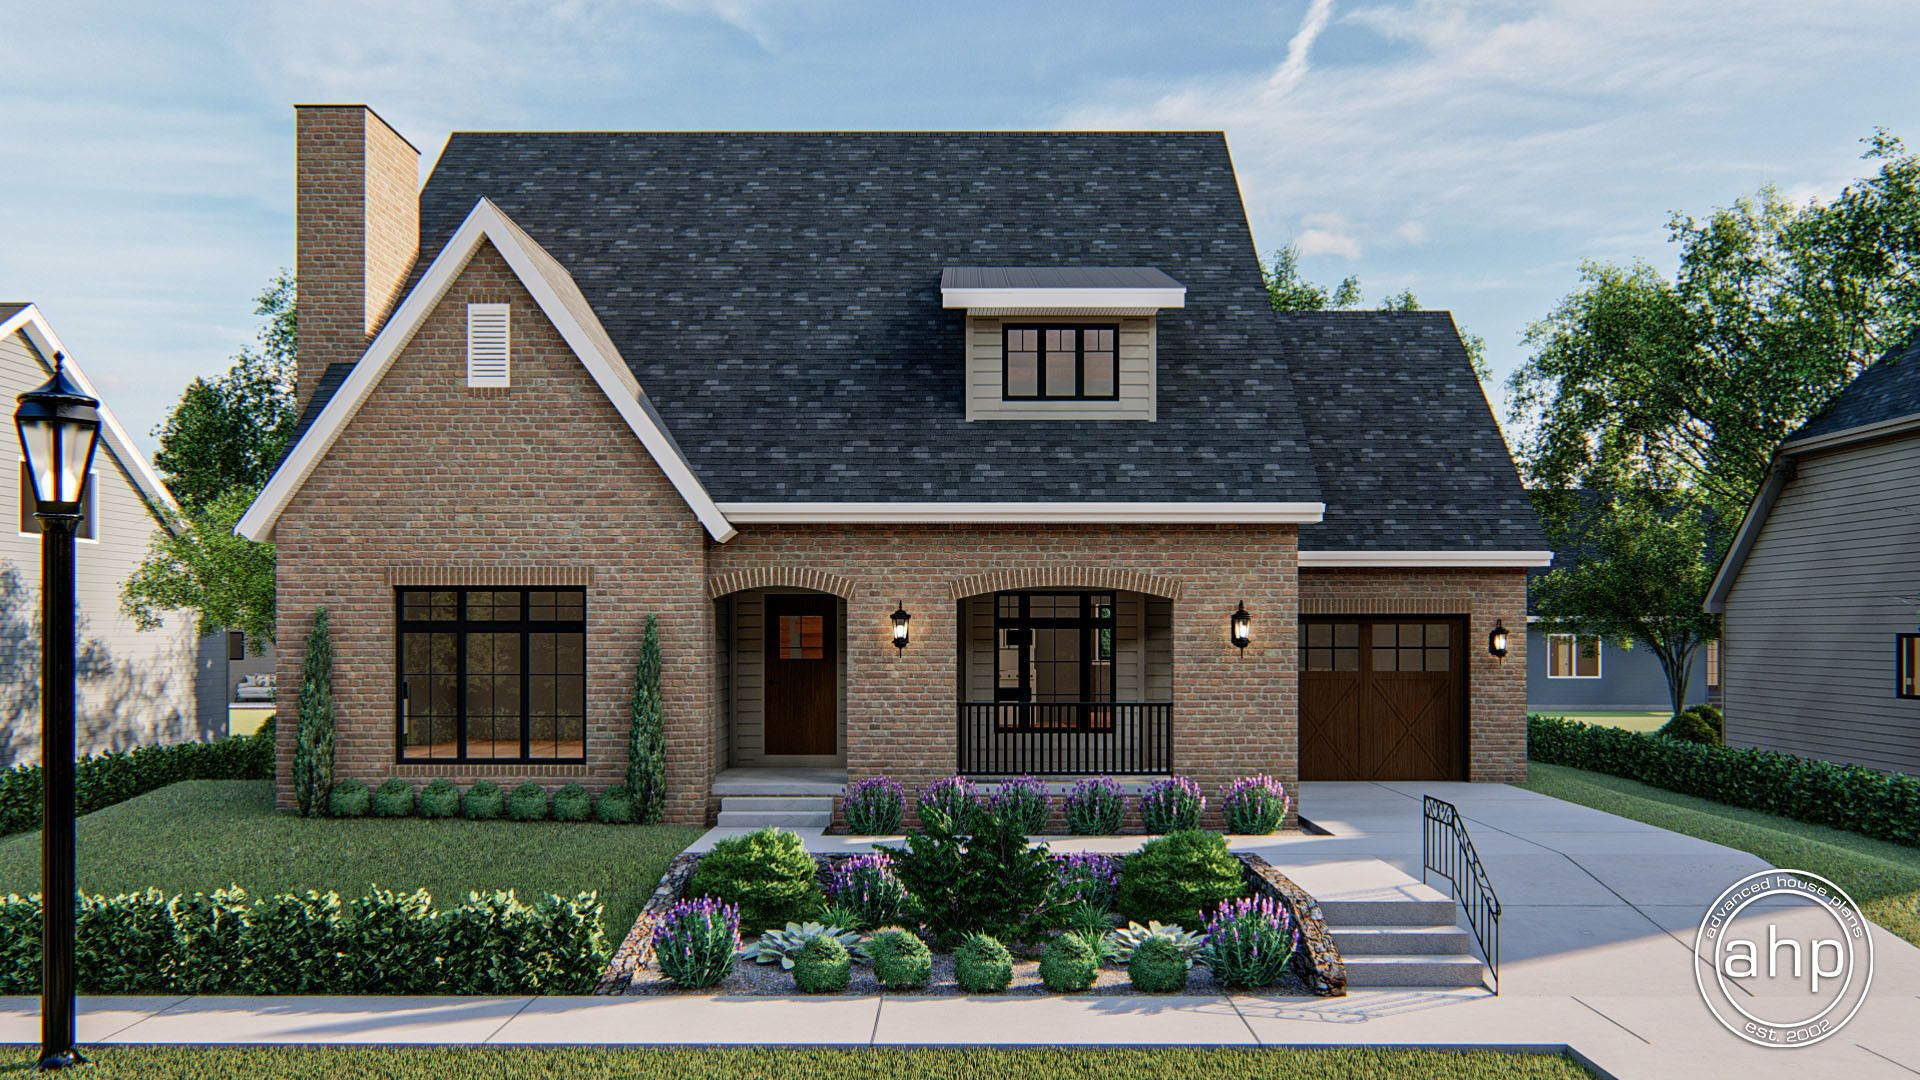 1.5 Story Modern Cottage Plan | Northridge in 2020 | Brick ...